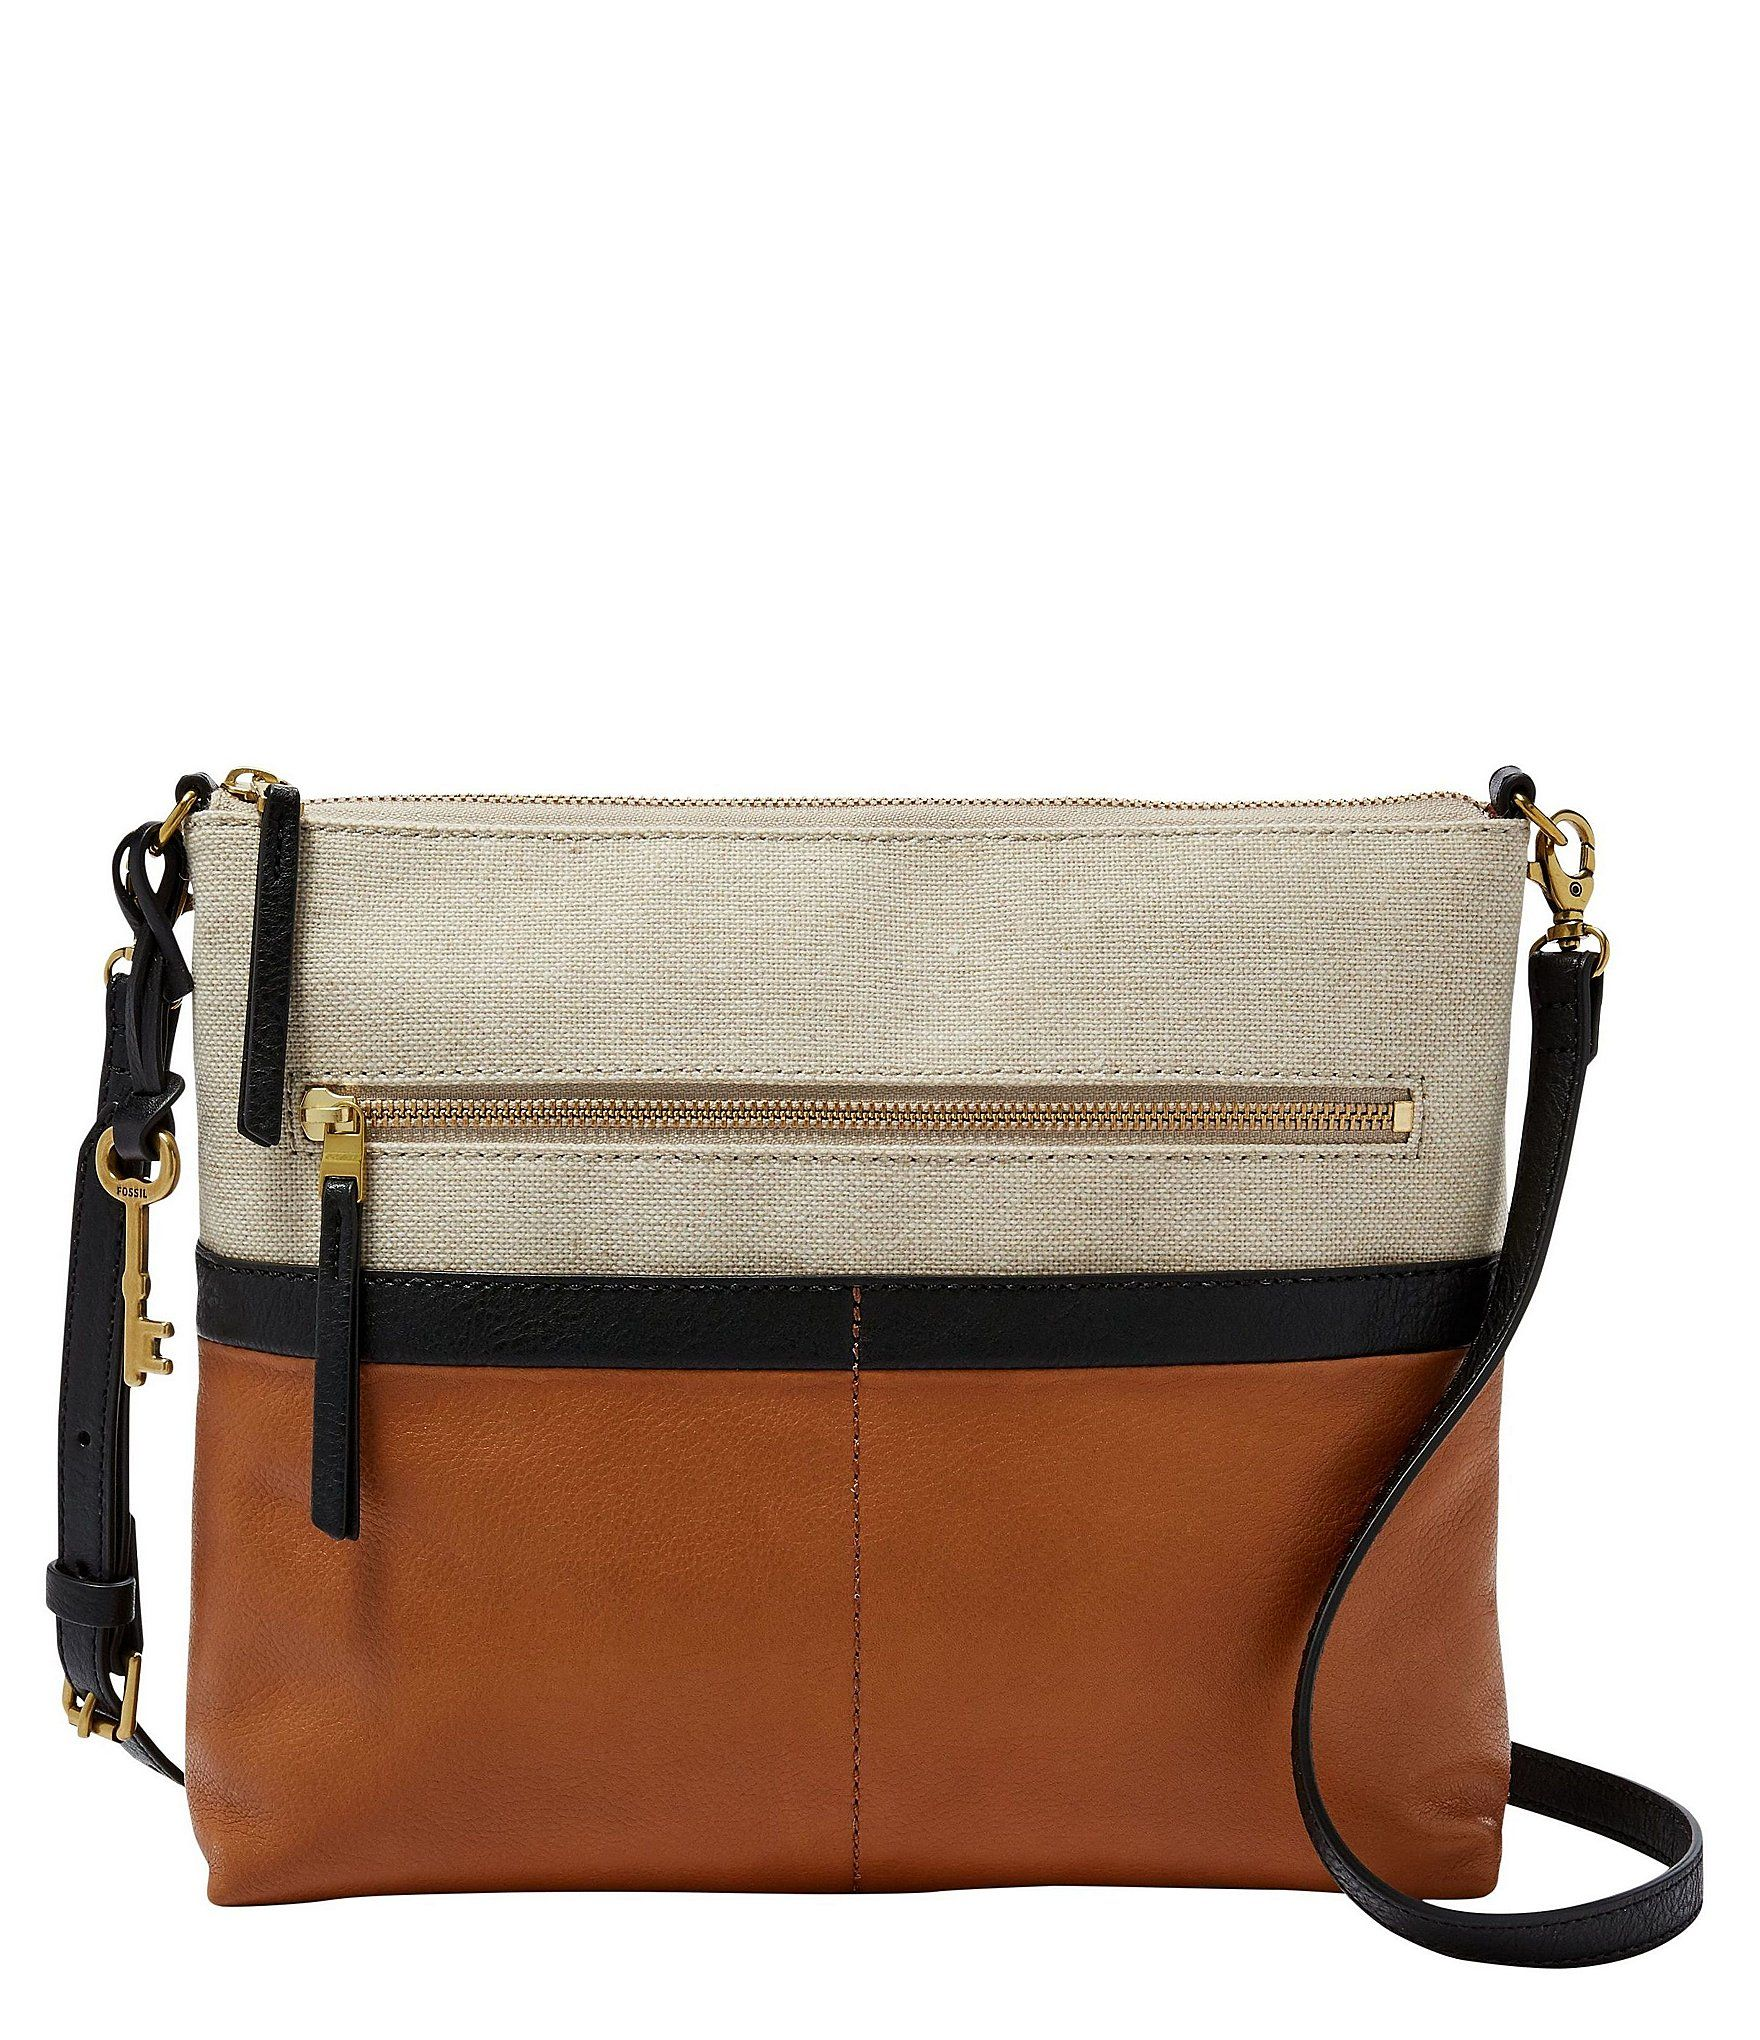 fd24111a190 Shop for Fossil Fiona Colorblock Large Cross-Body Bag at Dillards.com.  Visit Dillards.com to find clothing